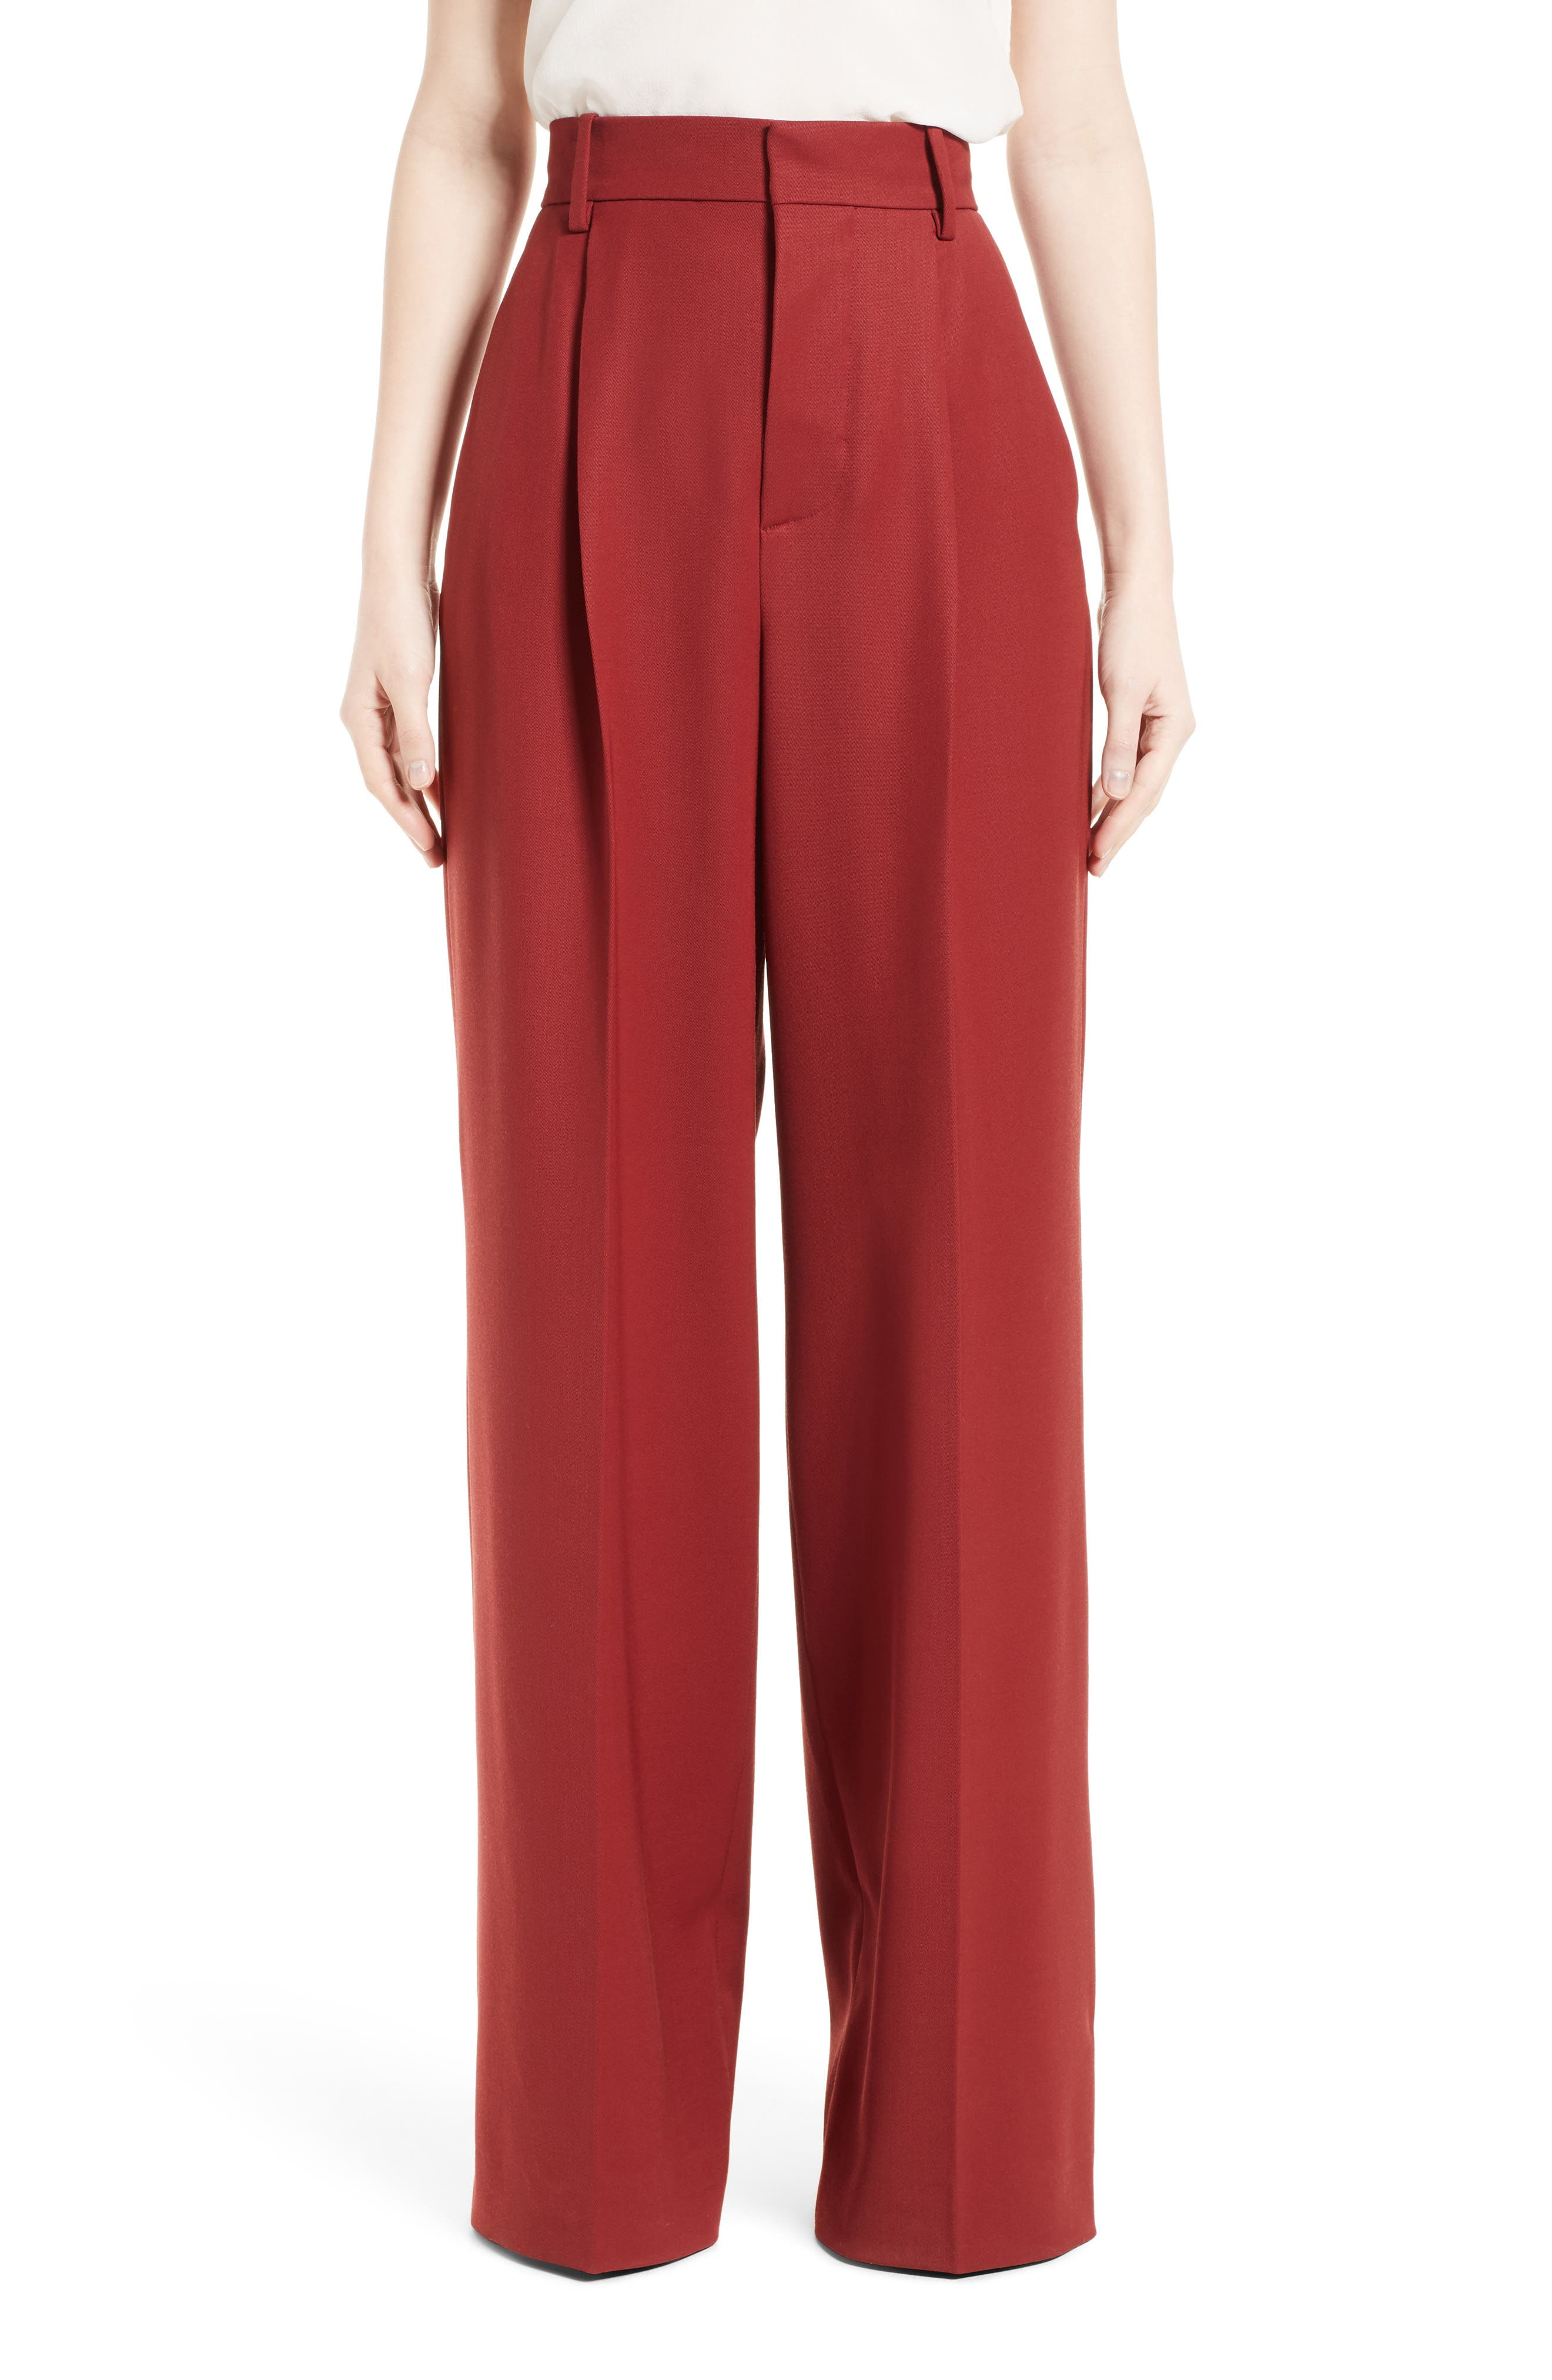 Stretch Wool Wide Leg Pants,                         Main,                         color, 930